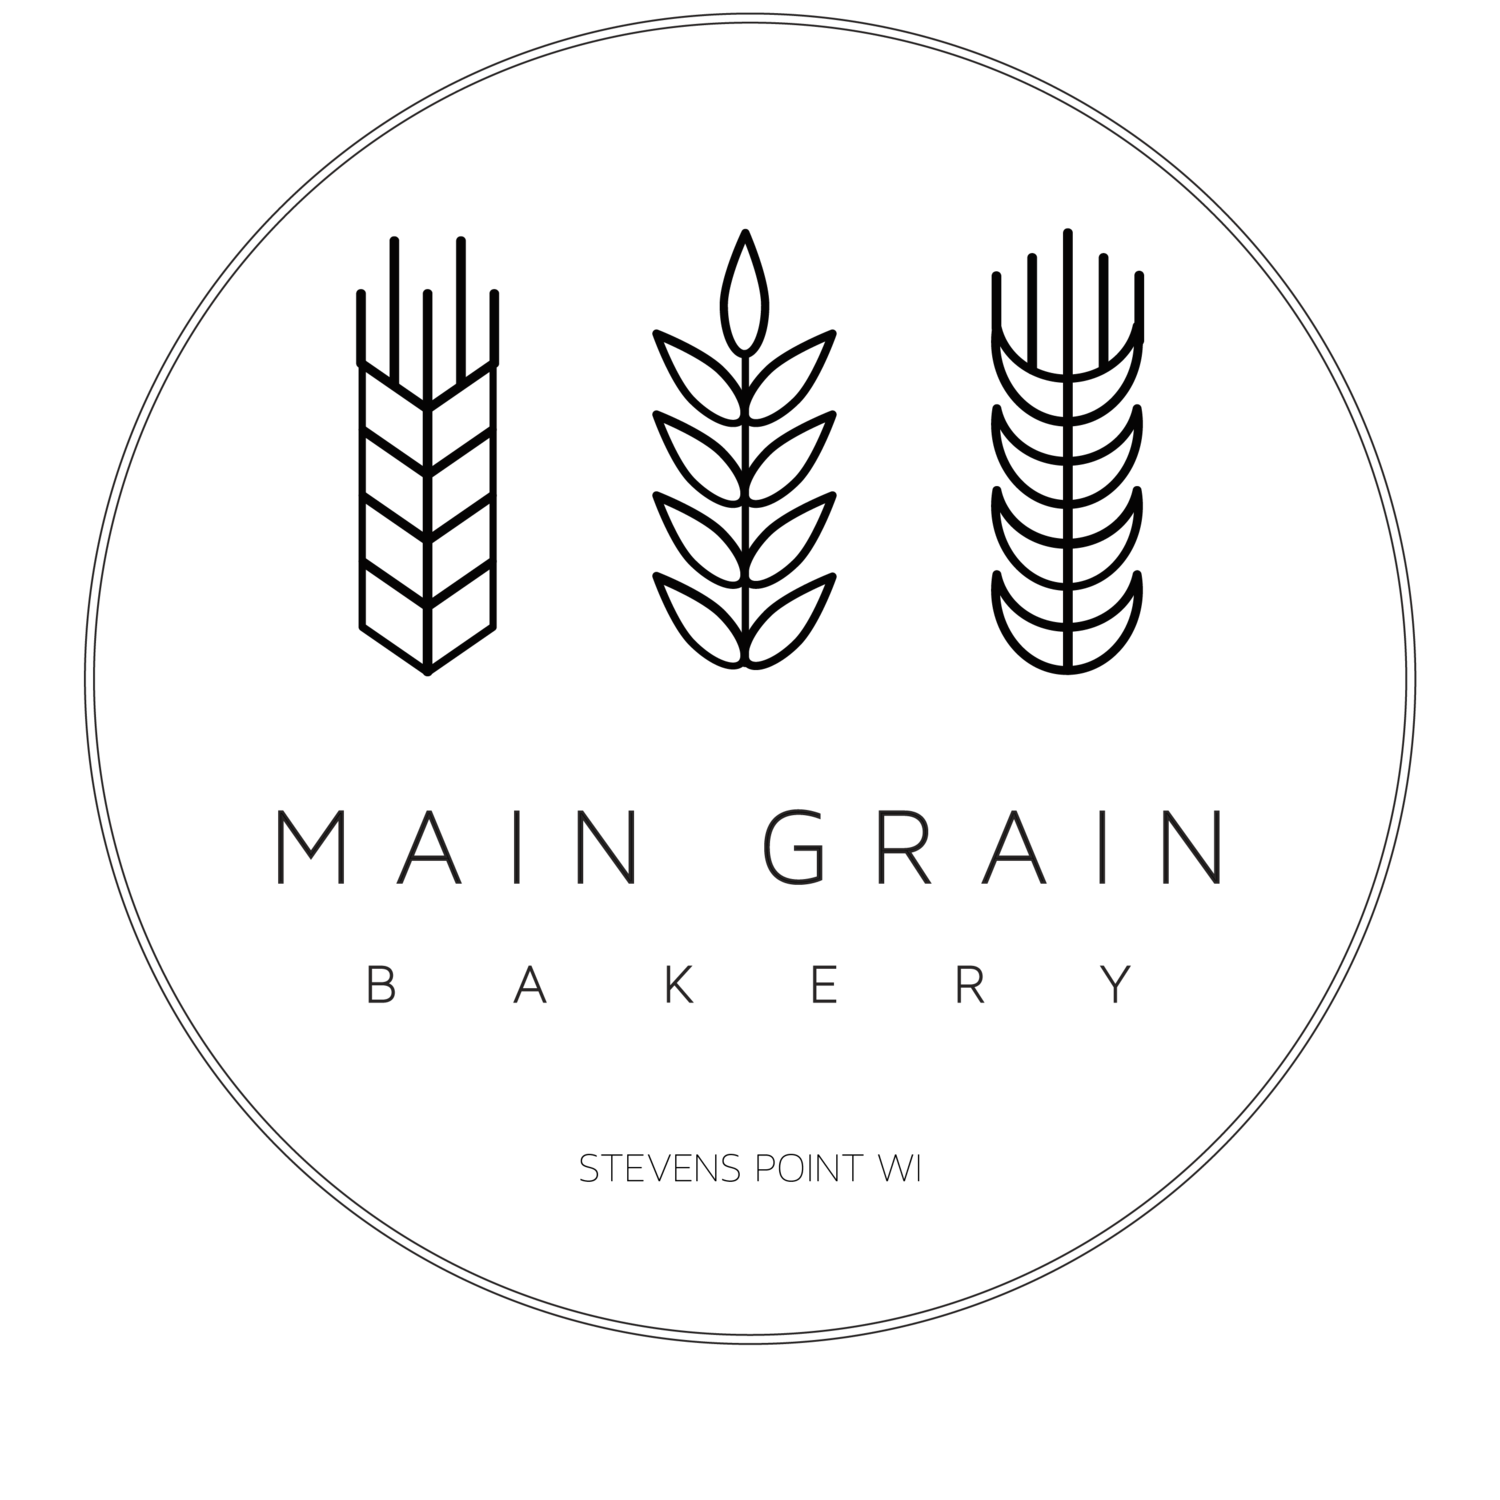 The Main Grain Bakery